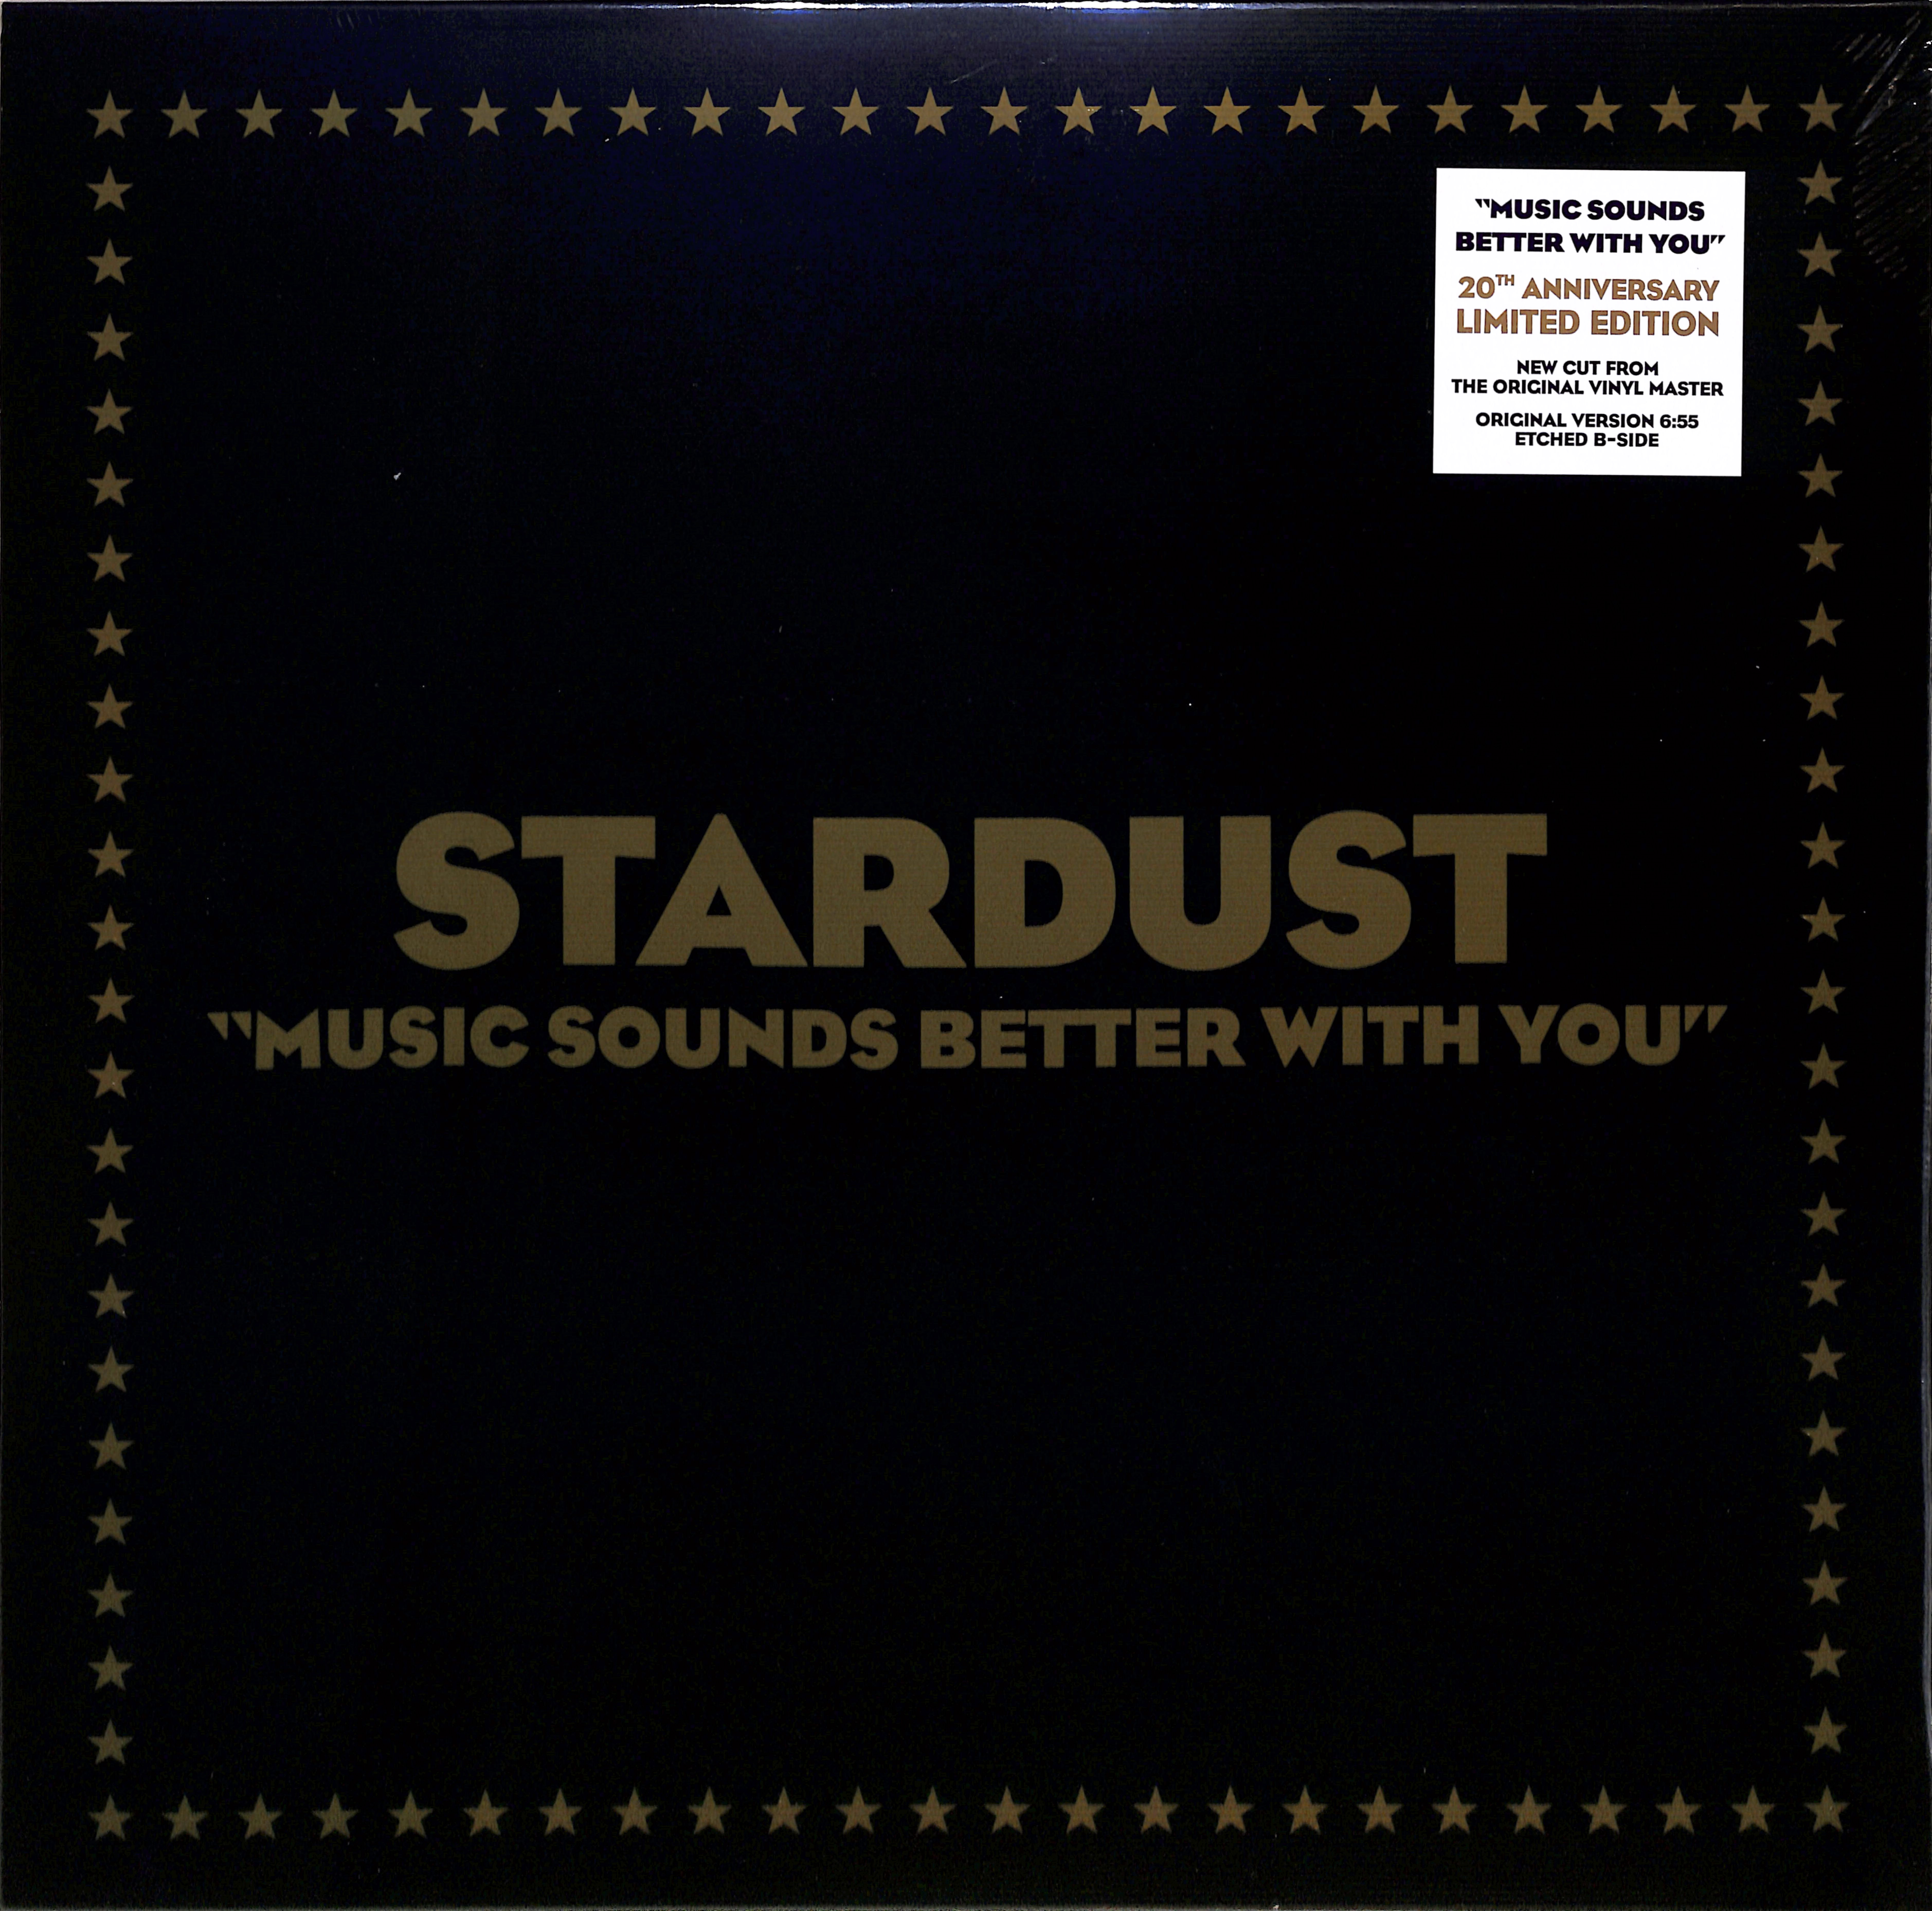 Stardust - MUSIC SOUNDS BETTER WITH YOU - 2019 COLLECTORS EDITION